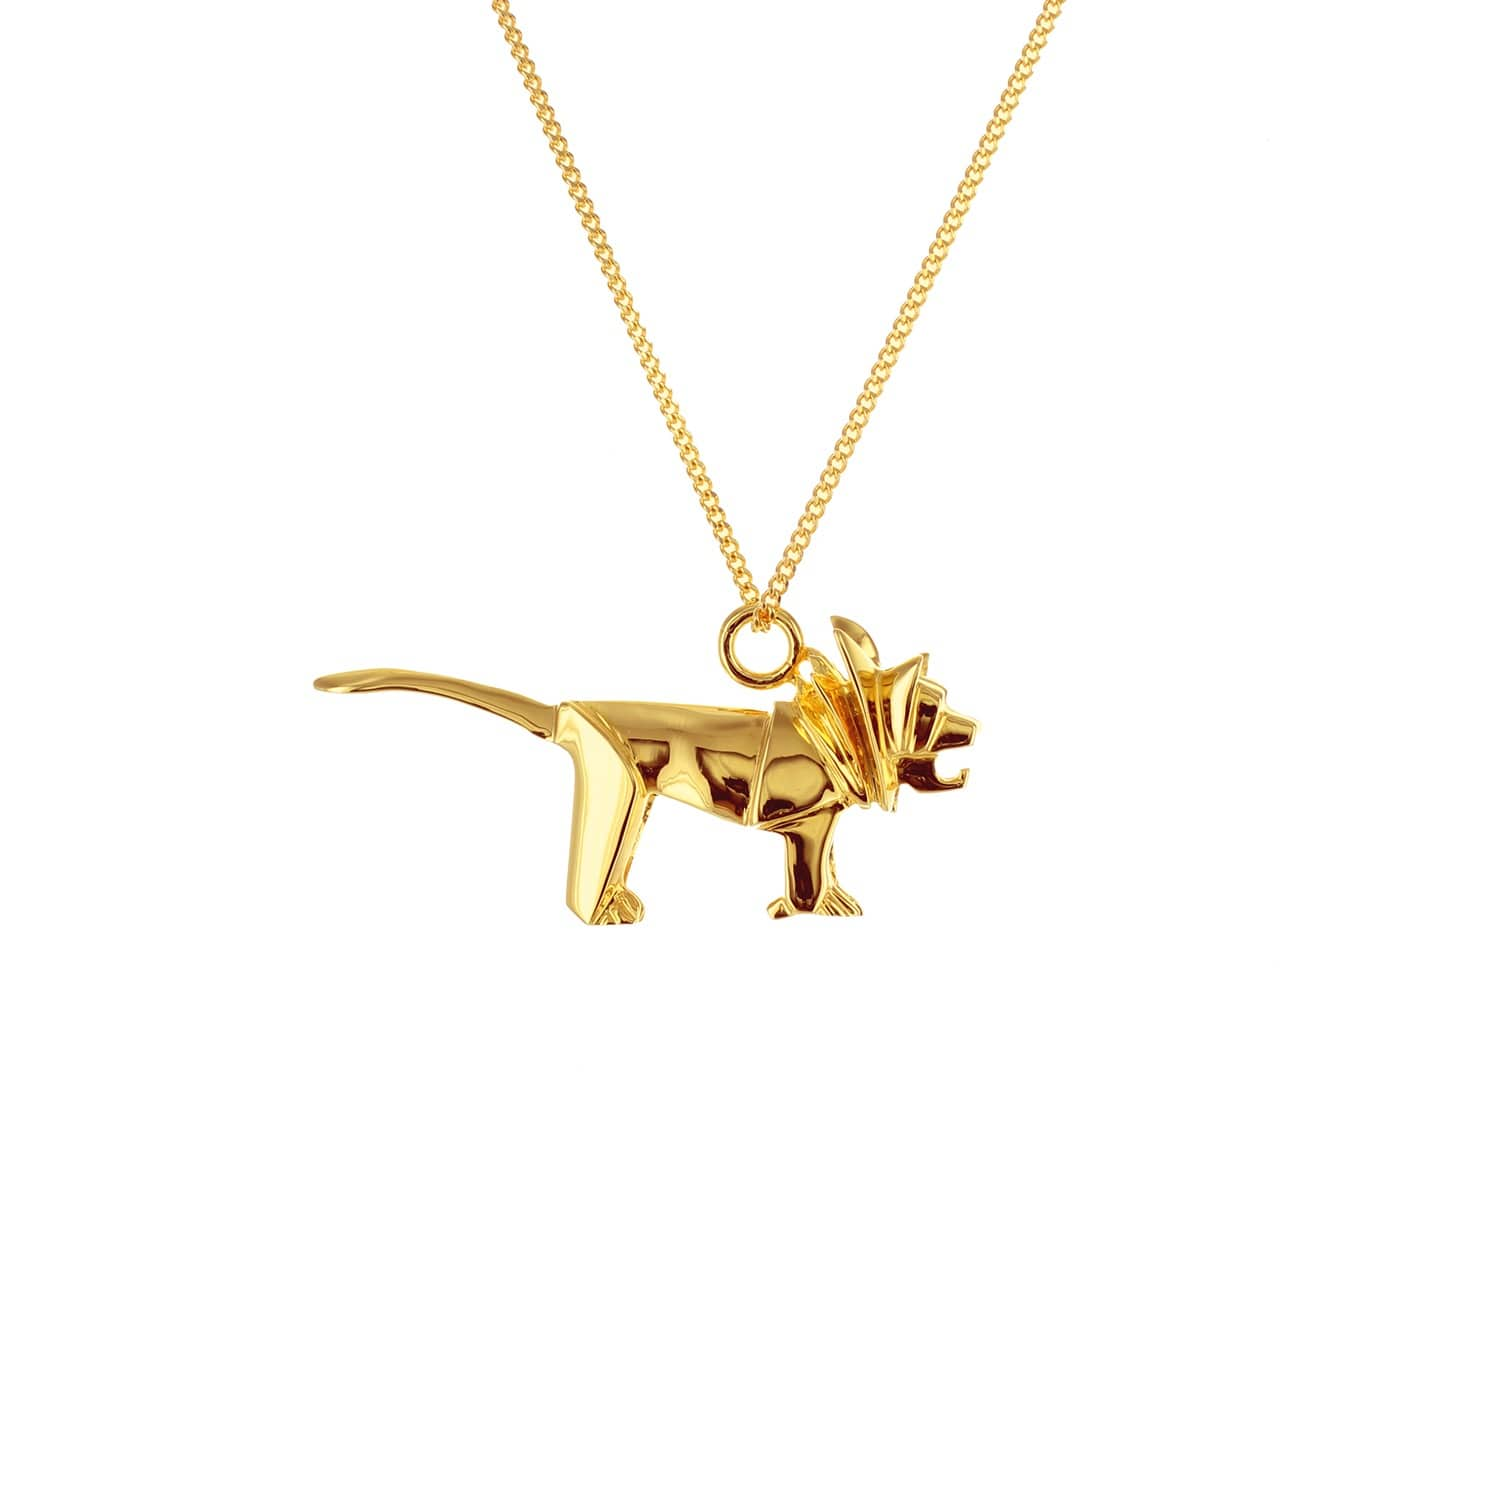 Origami Jewellery Sterling Silver & Gold Mini Lion Origami Necklace xoKNxcg